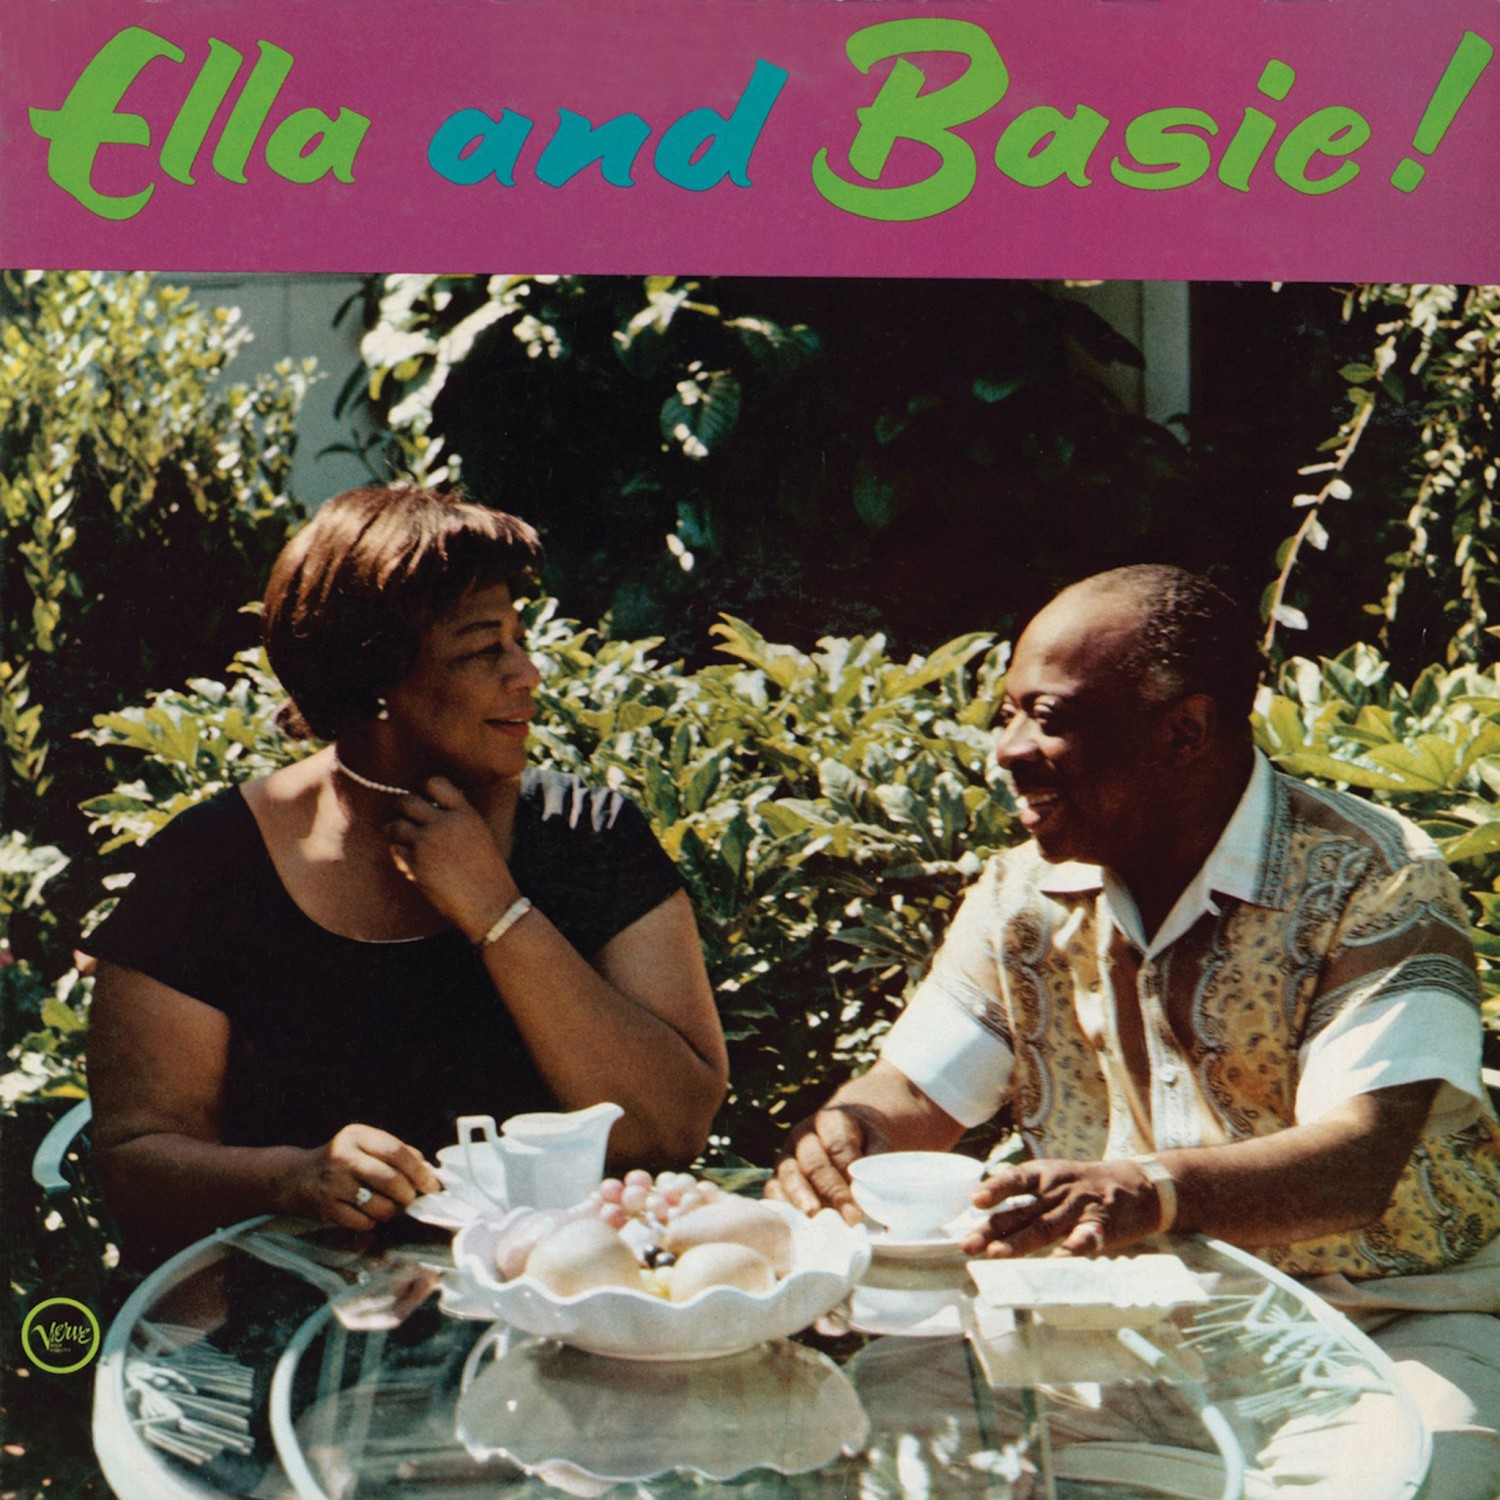 Download Ella Fitzgerald & The Count Basie Orchestra - Ella & Basie: On the Sunny Side of the Street (Universal/Verve) im Test, Bild 1